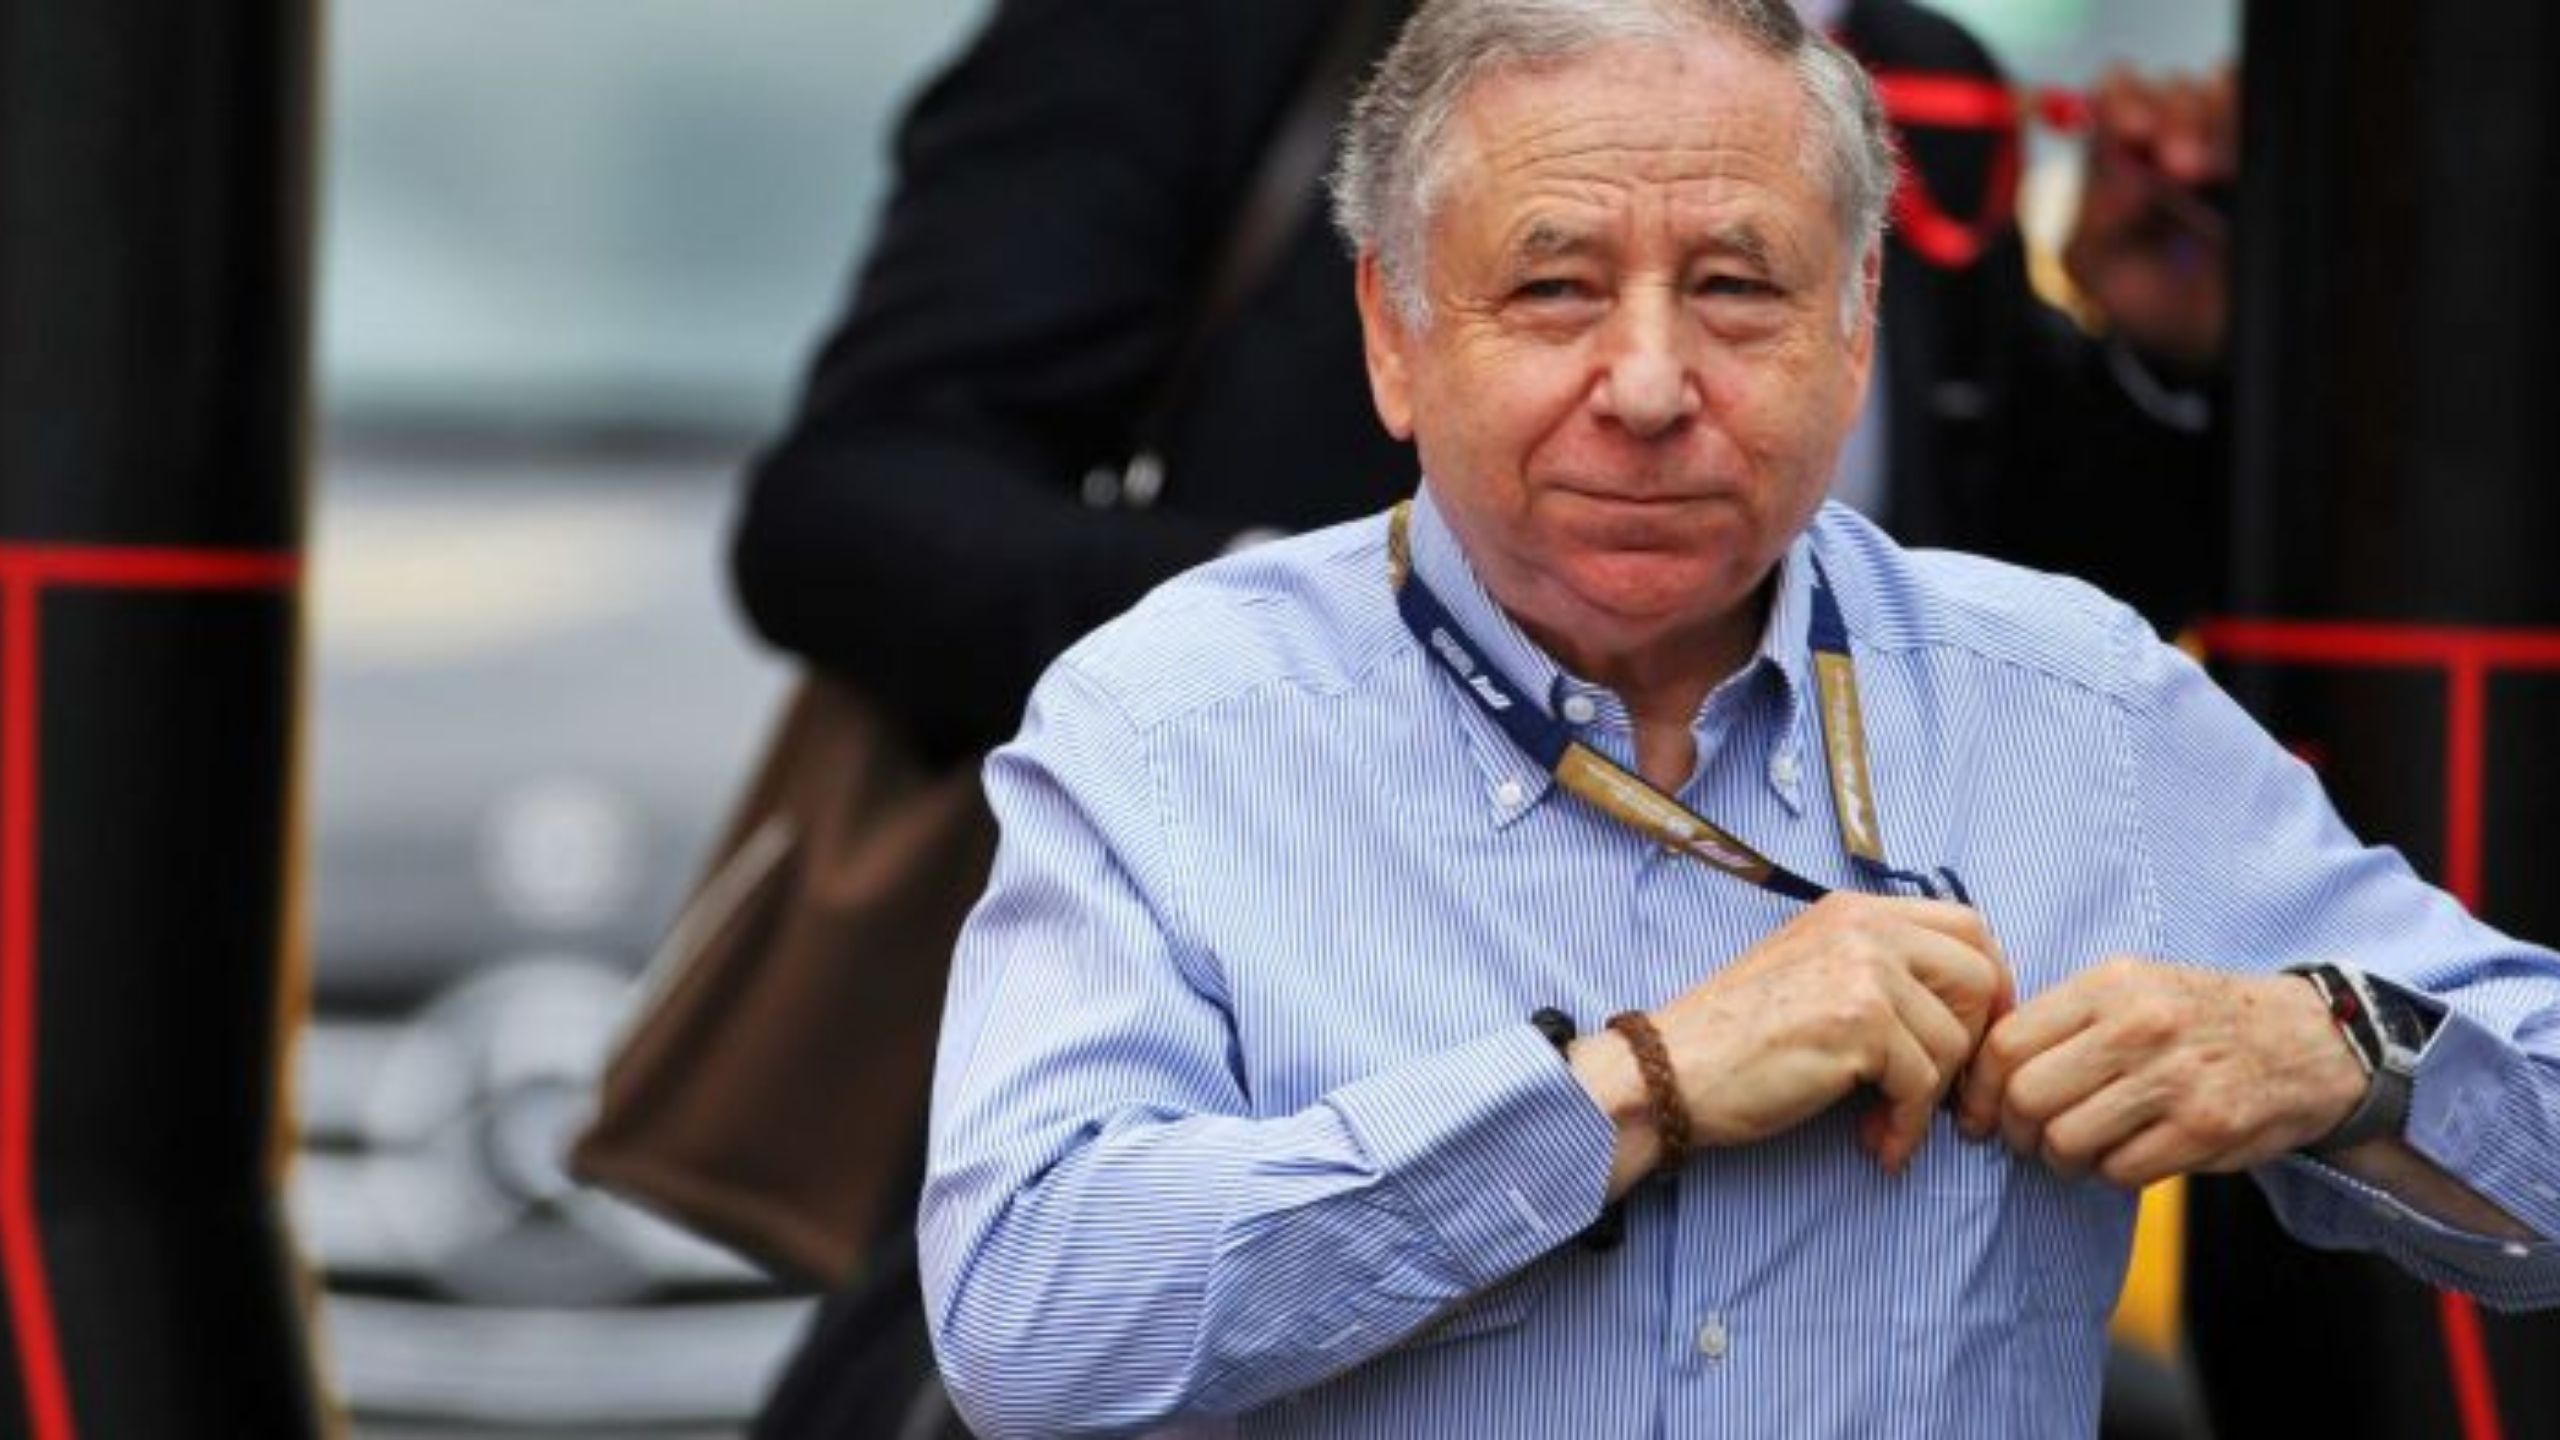 """""""It's not easy to get a superlicence"""" - FIA boss Jean Todt defends decision allowing Nikita Mazepin to race"""